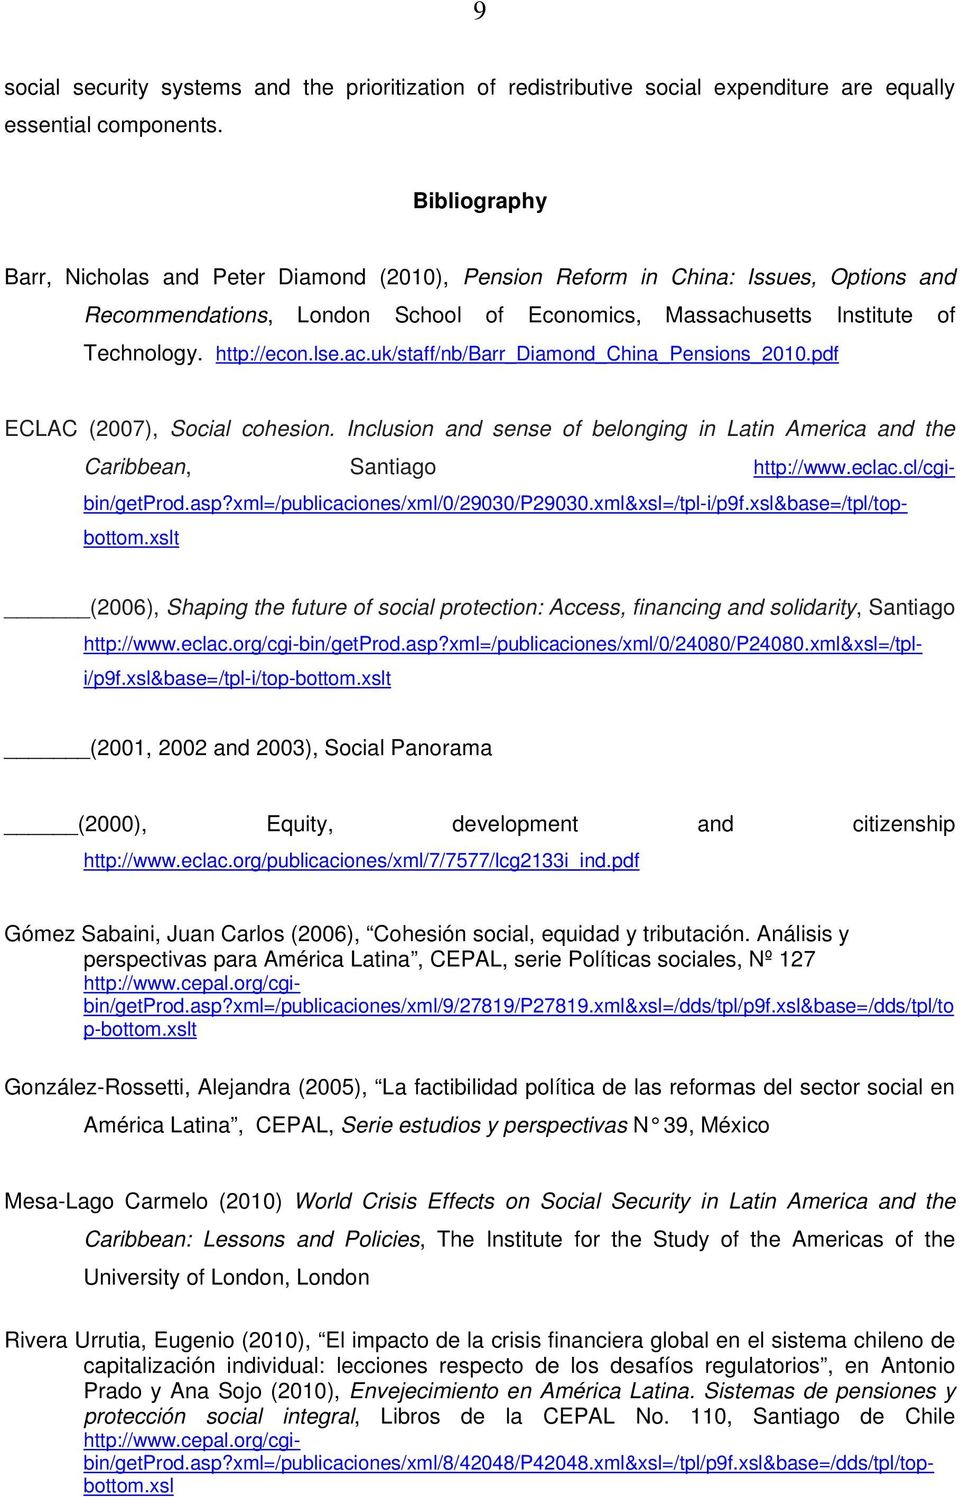 ac.uk/staff/nb/barr_diamond_china_pensions_2010.pdf ECLAC (2007), Social cohesion. Inclusion and sense of belonging in Latin America and the Caribbean, Santiago http://www.eclac.cl/cgibin/getprod.asp?